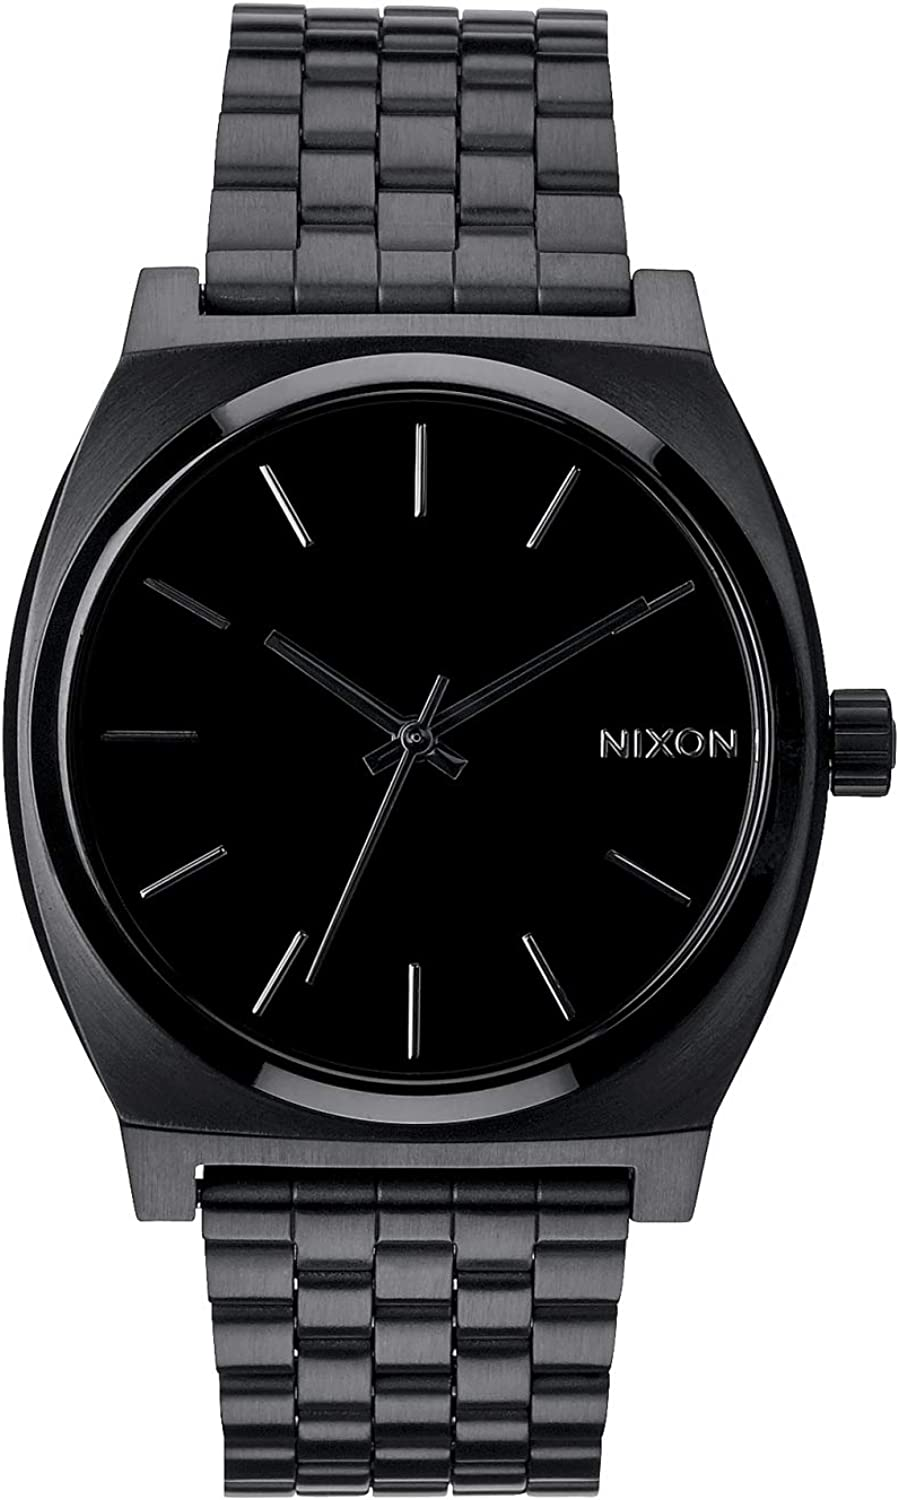 Nixon Time Teller A045. 100m Water Resistant Watch 37mm Stainless Steel Watch Face